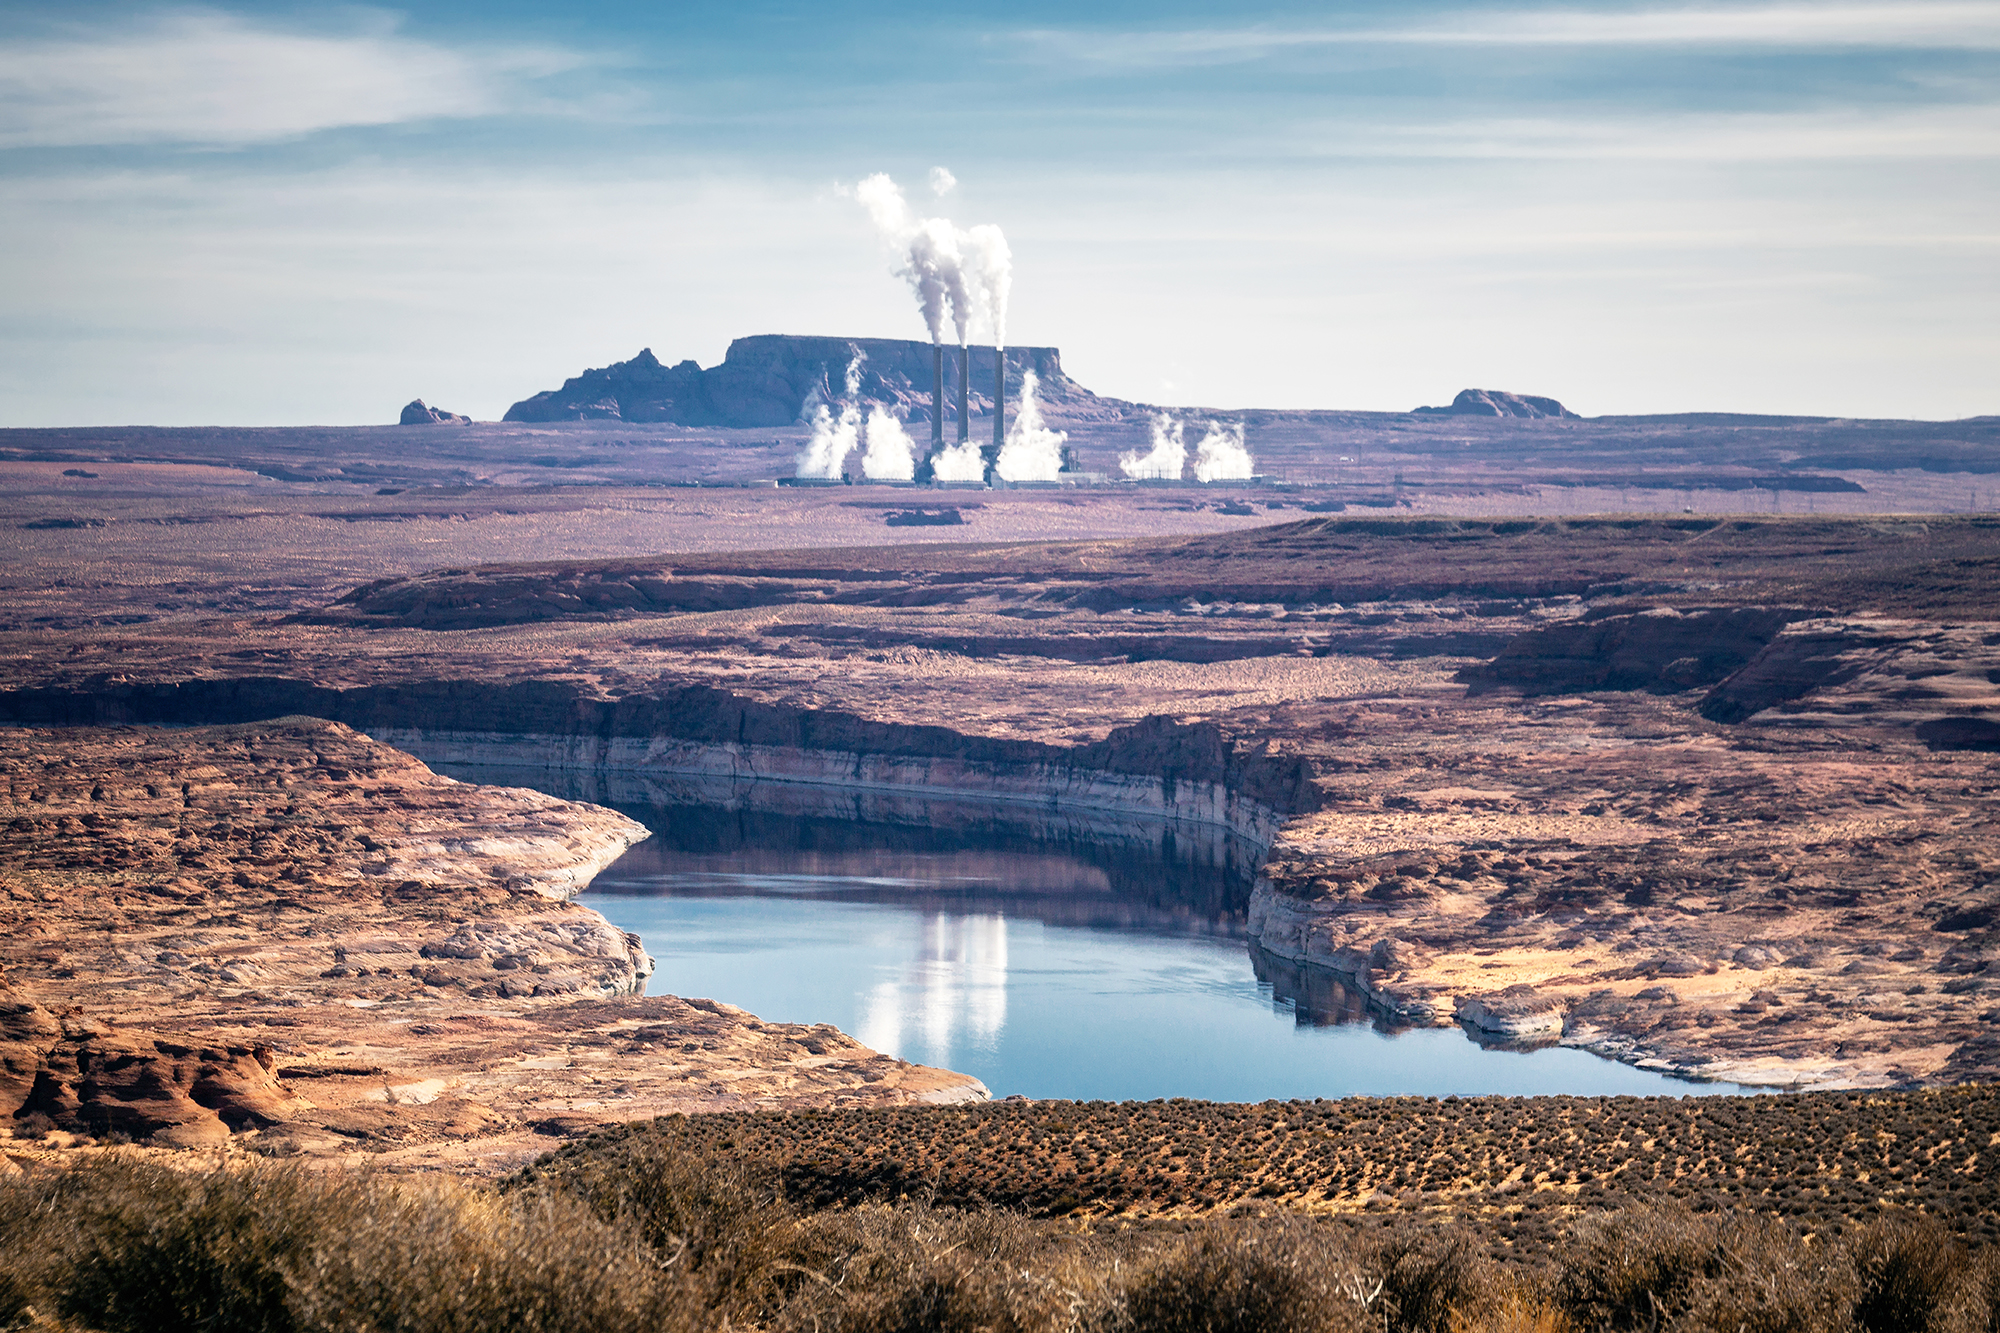 Navajo Generating Station owners to move forward with decommissioning the coal-fired power plant near Page, Arizona